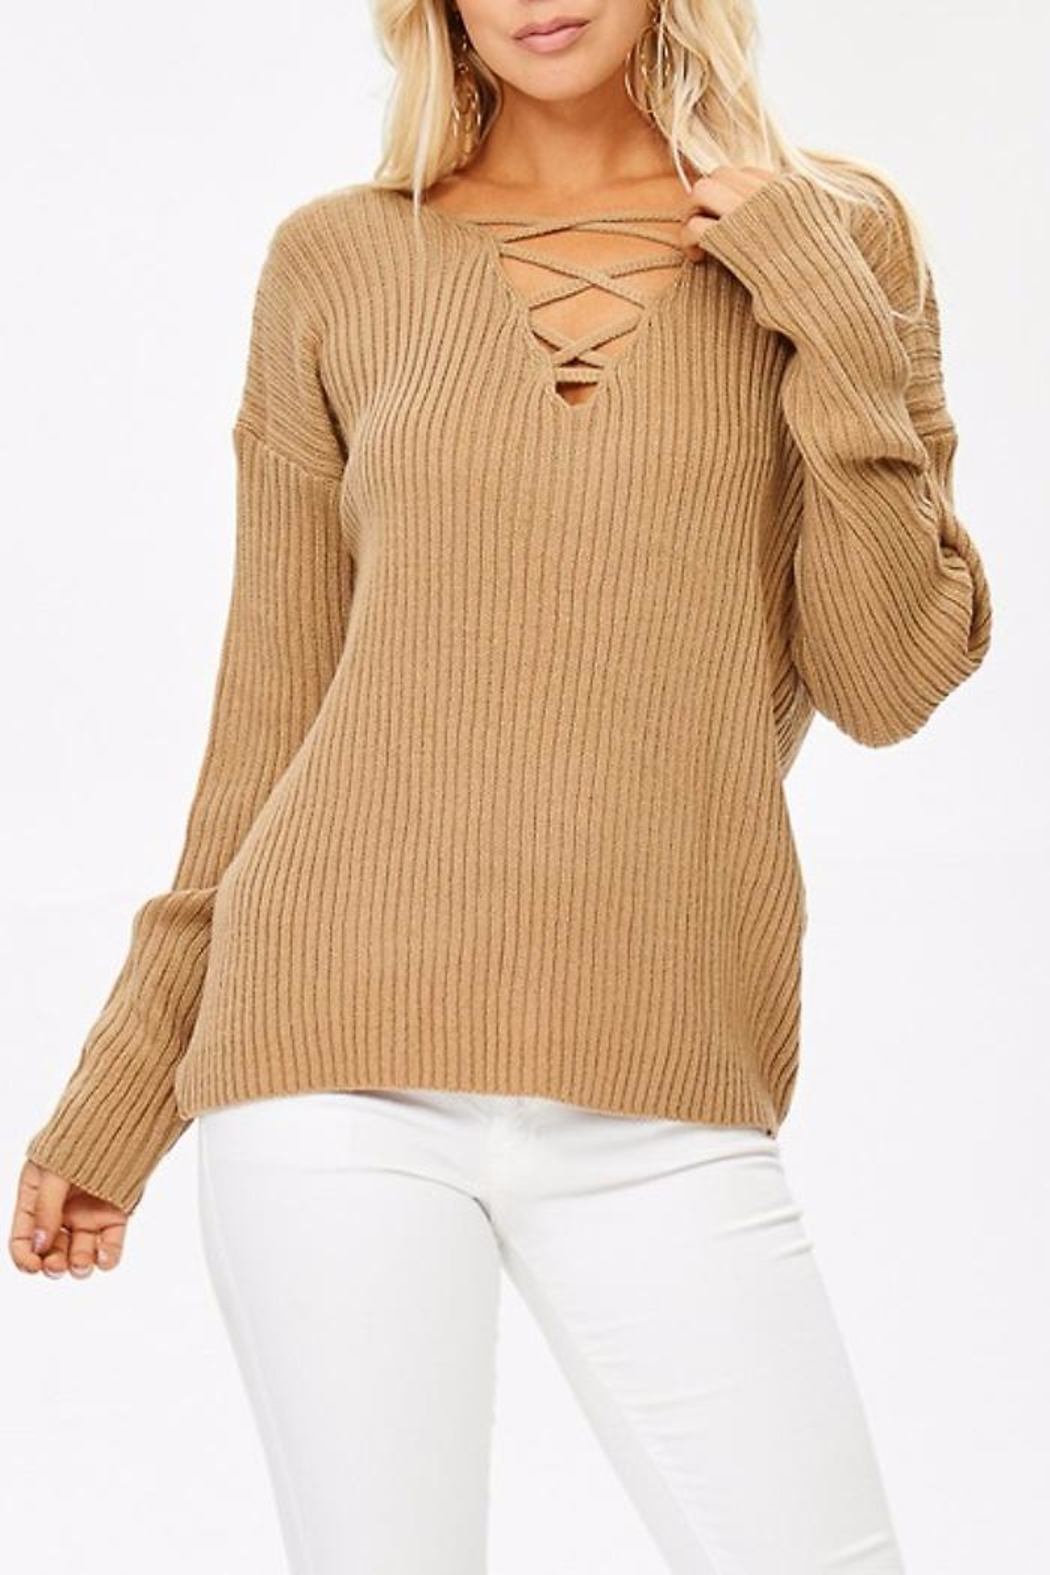 People Outfitter Caramel Sweater - Main Image